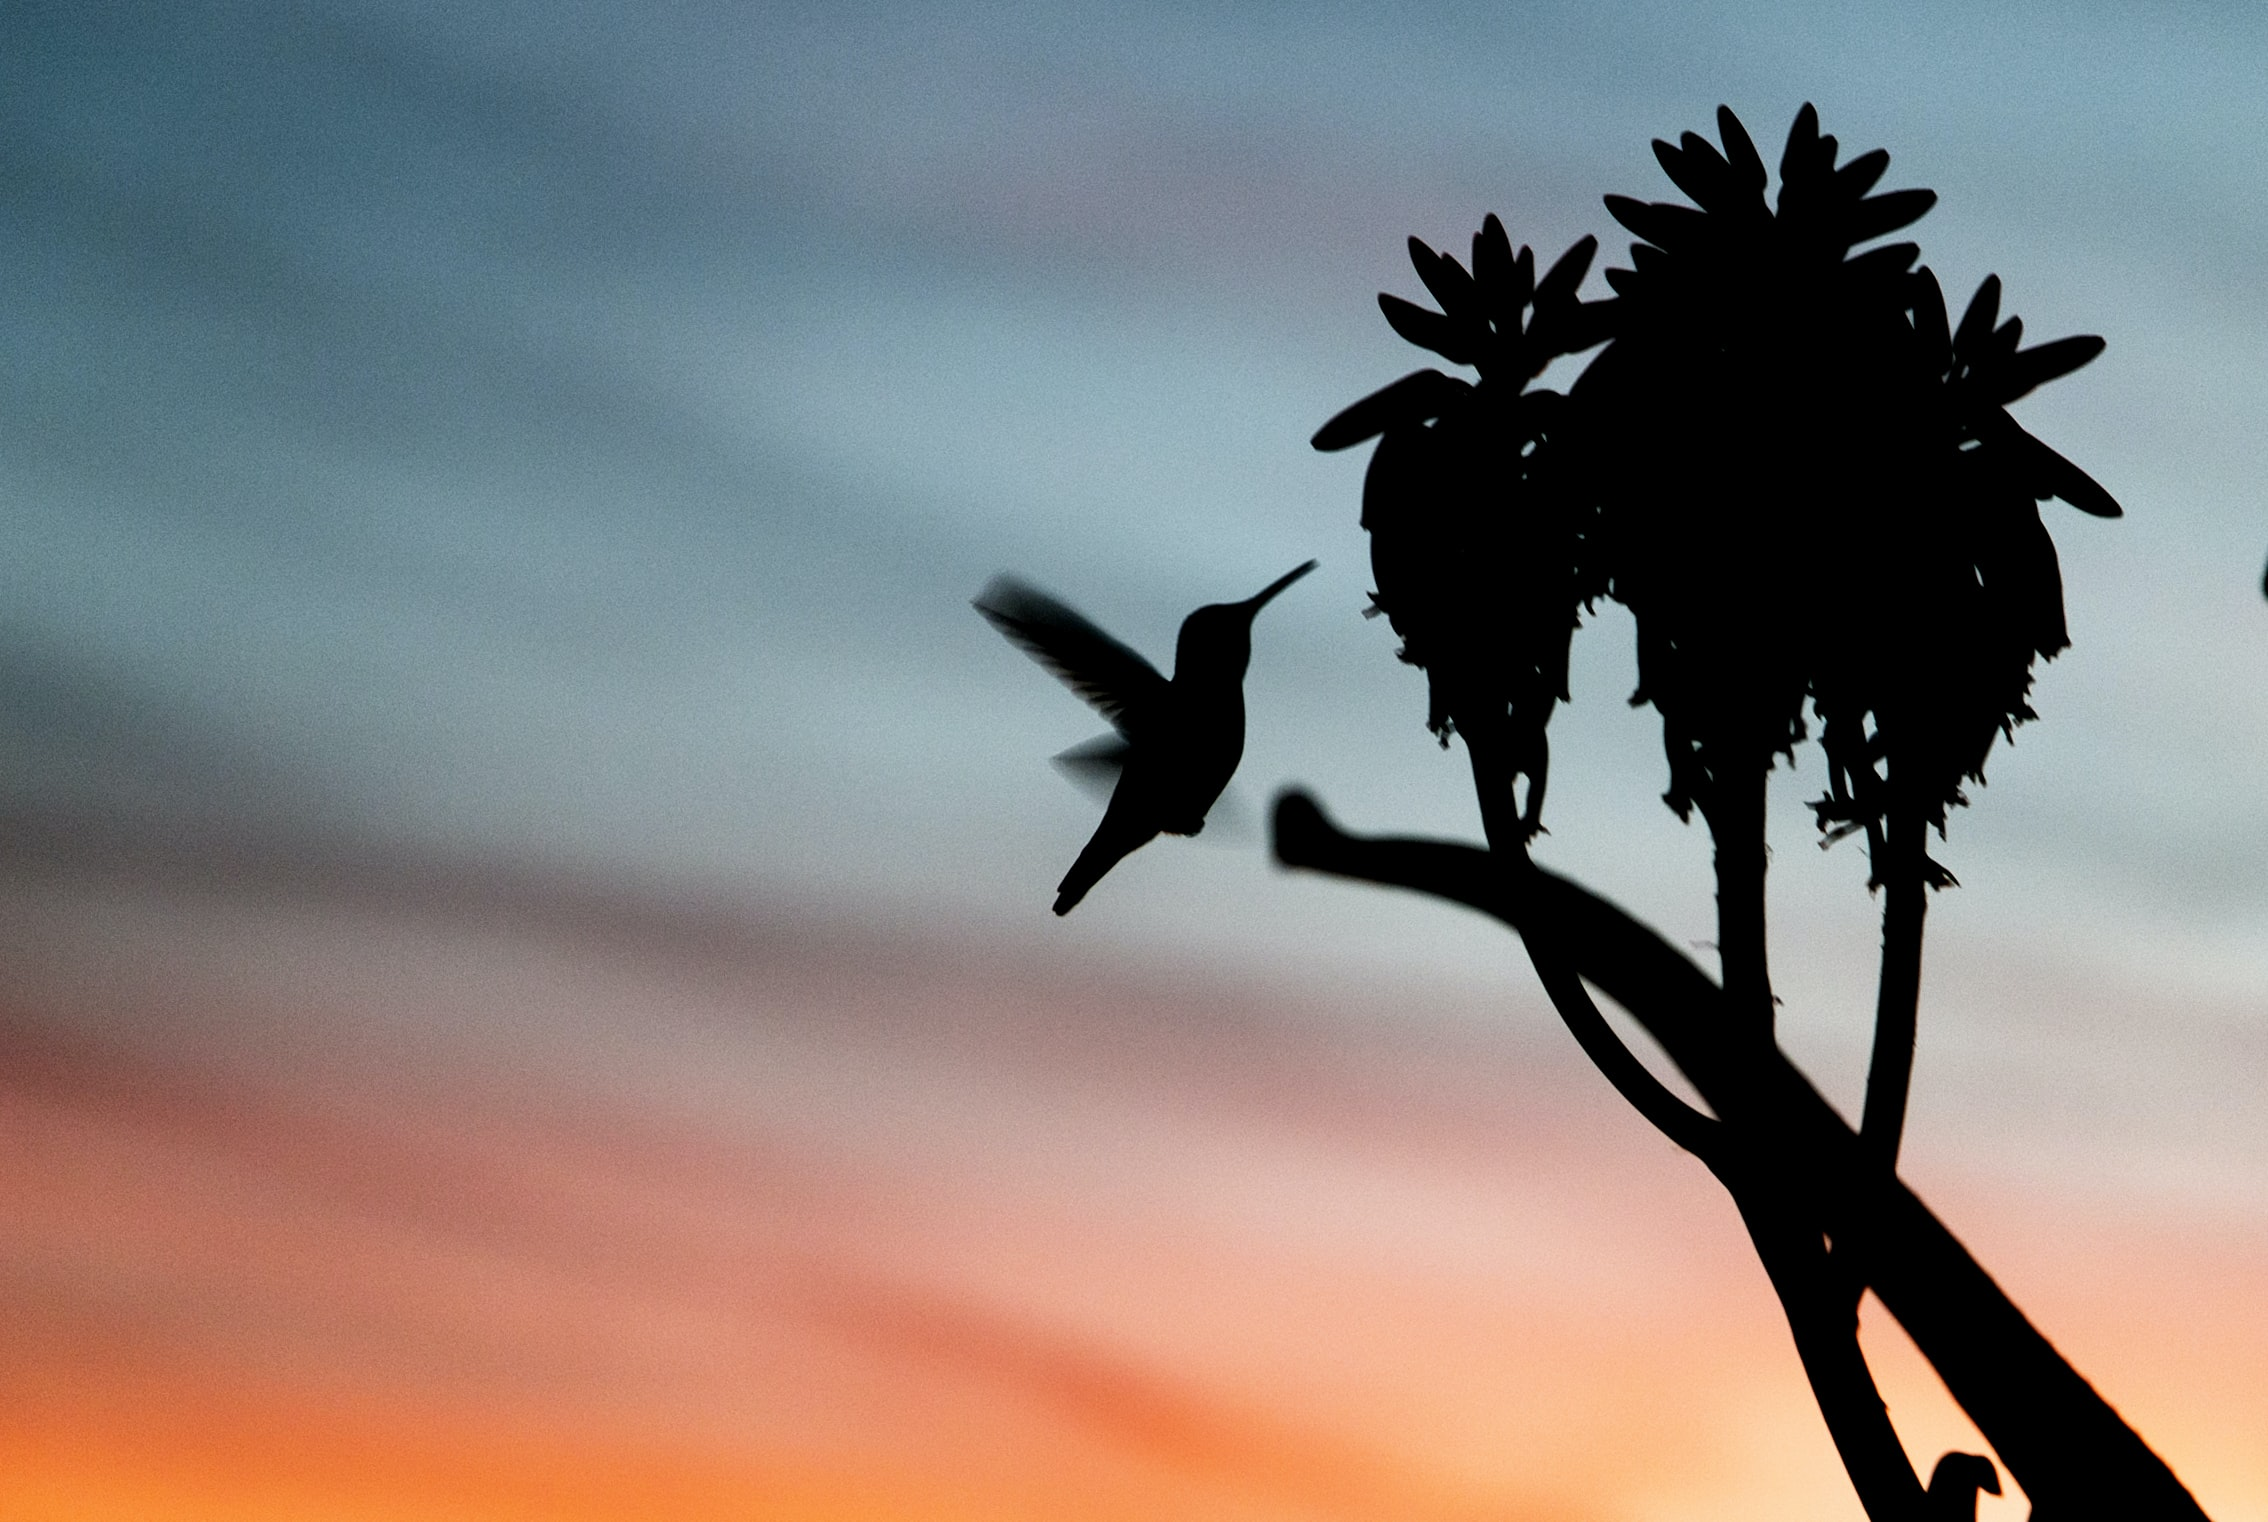 Silhouette of a hummingbird flying near plants against a blue and orange sky